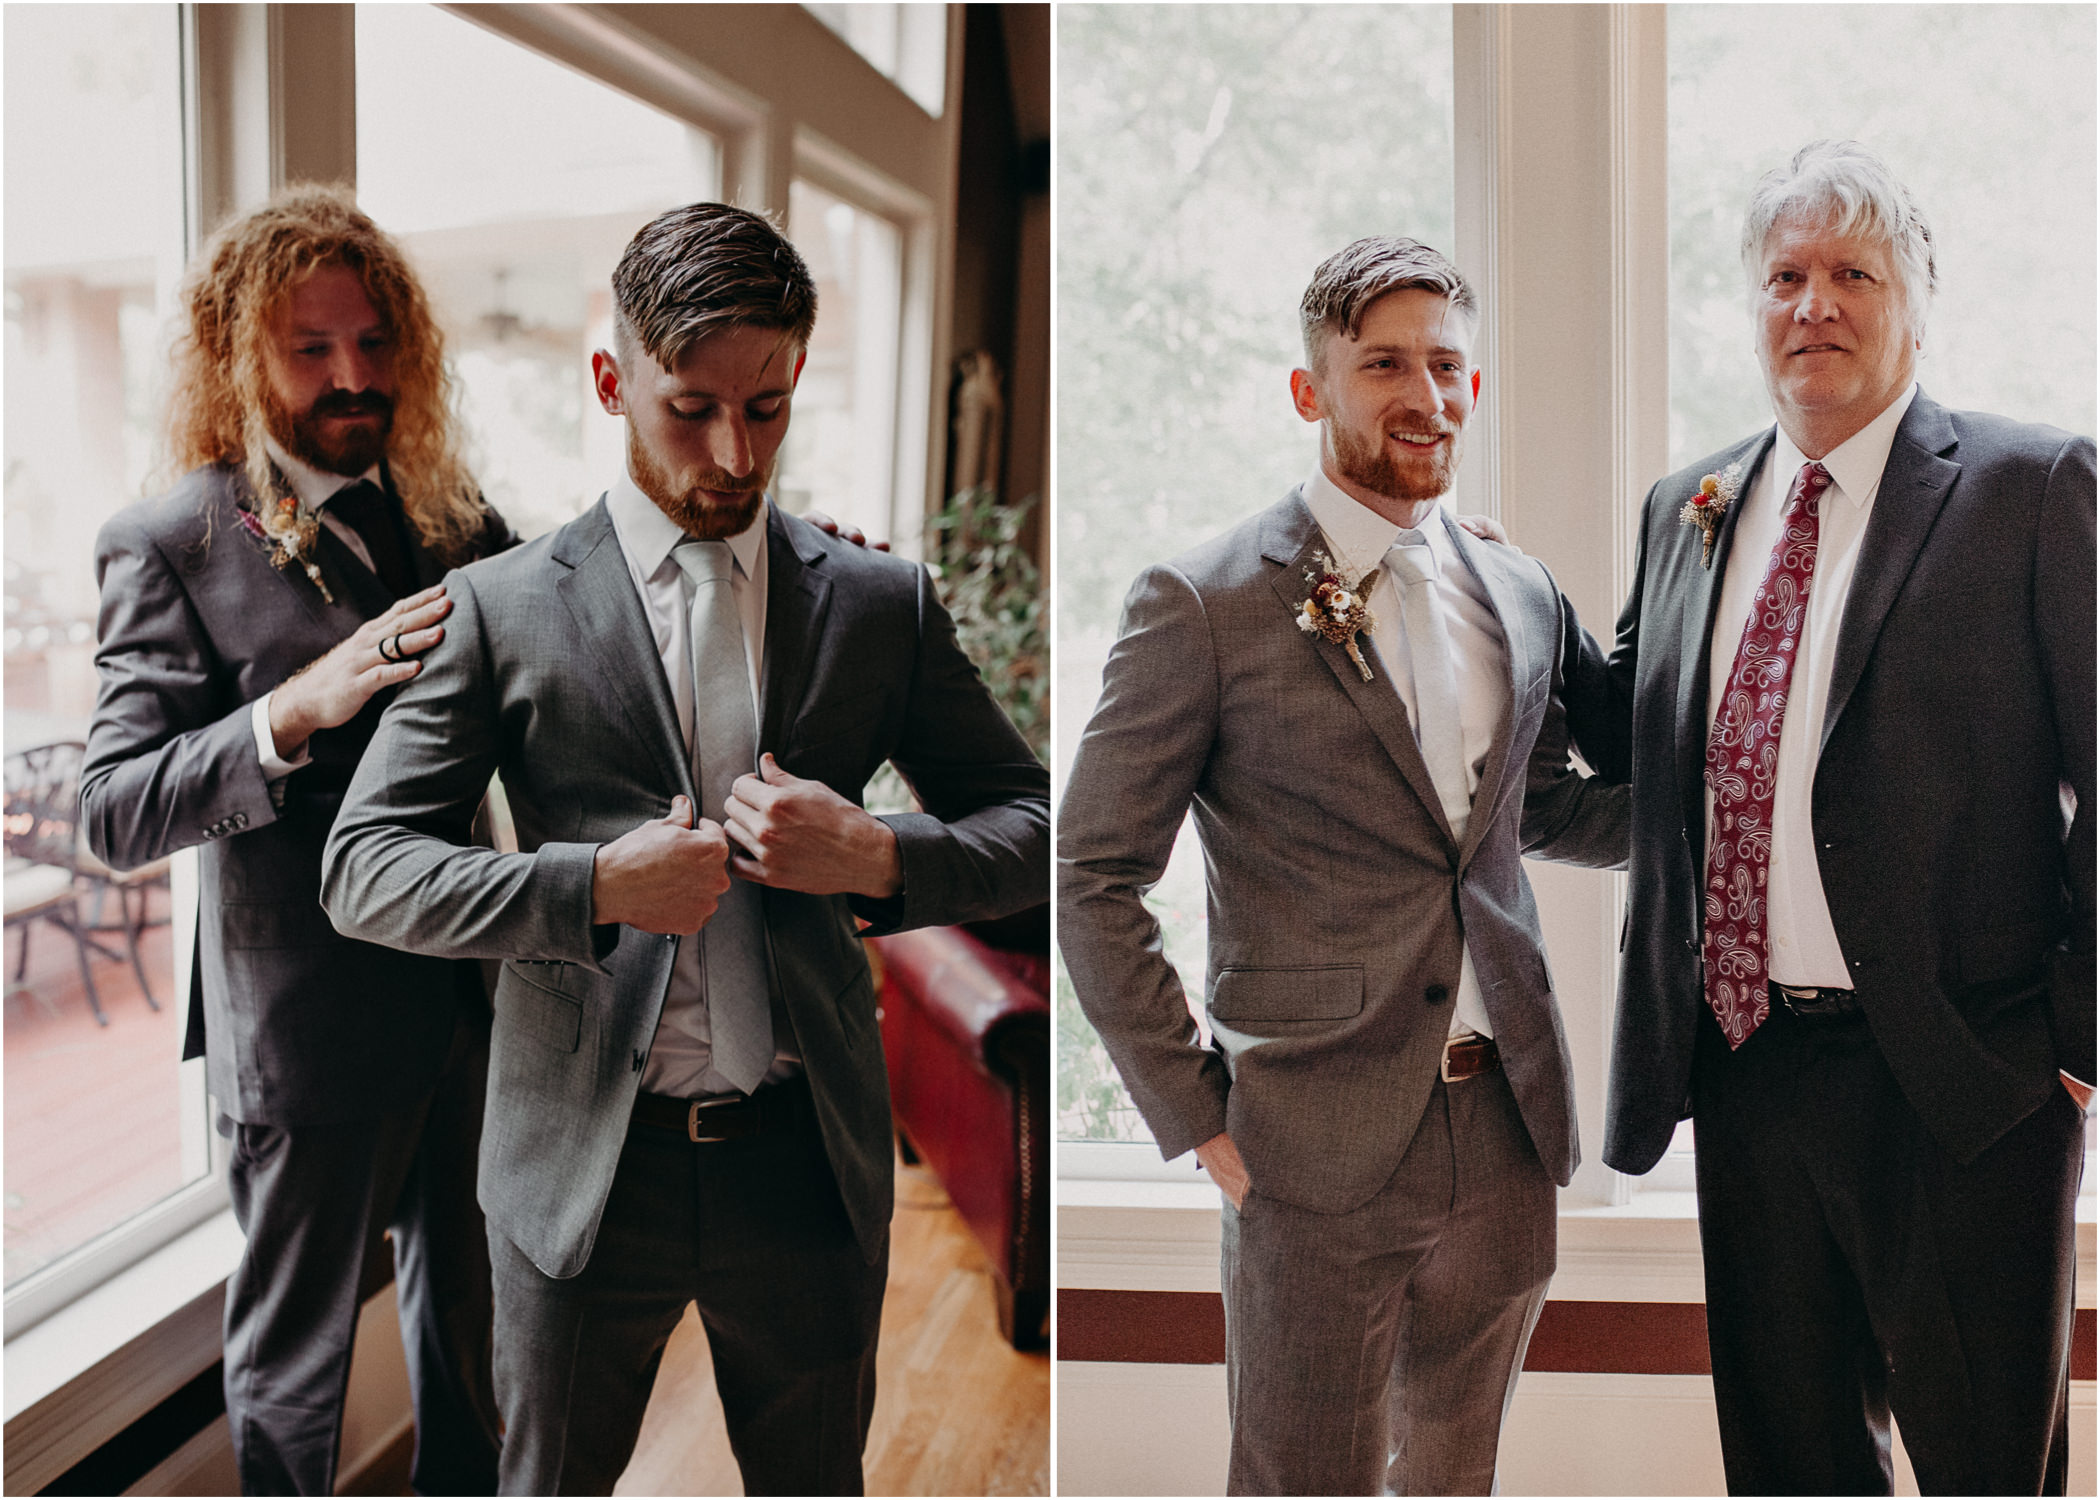 29 Groom getting ready pictures before ceremony- Weding day, Atlanta-Ga Photographer .jpg